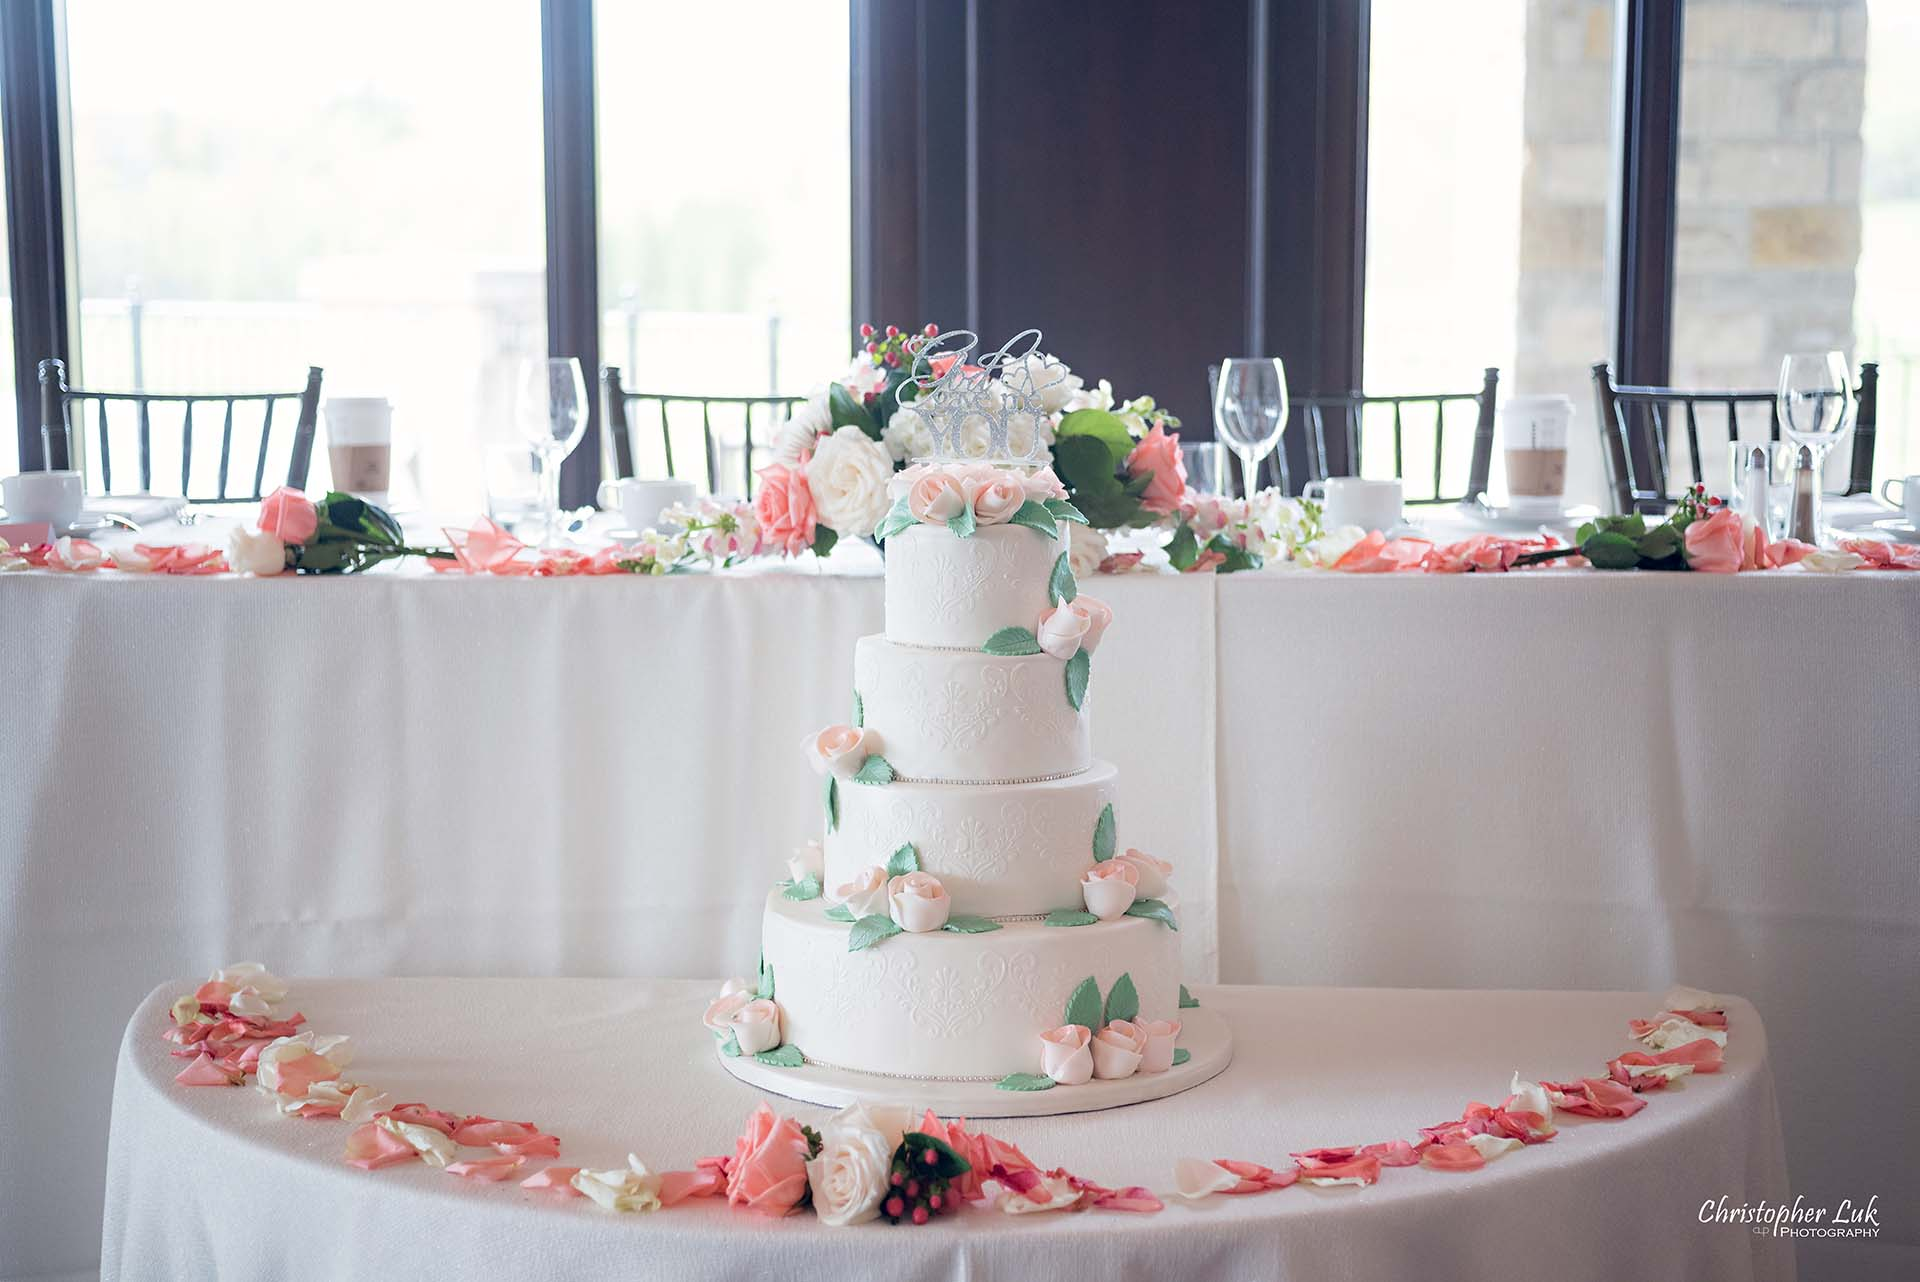 Christopher Luk Toronto Wedding Photographer Eagles Nest Golf Club Course Clubhouse Great Hall Dinner Reception Head Cake Table Details